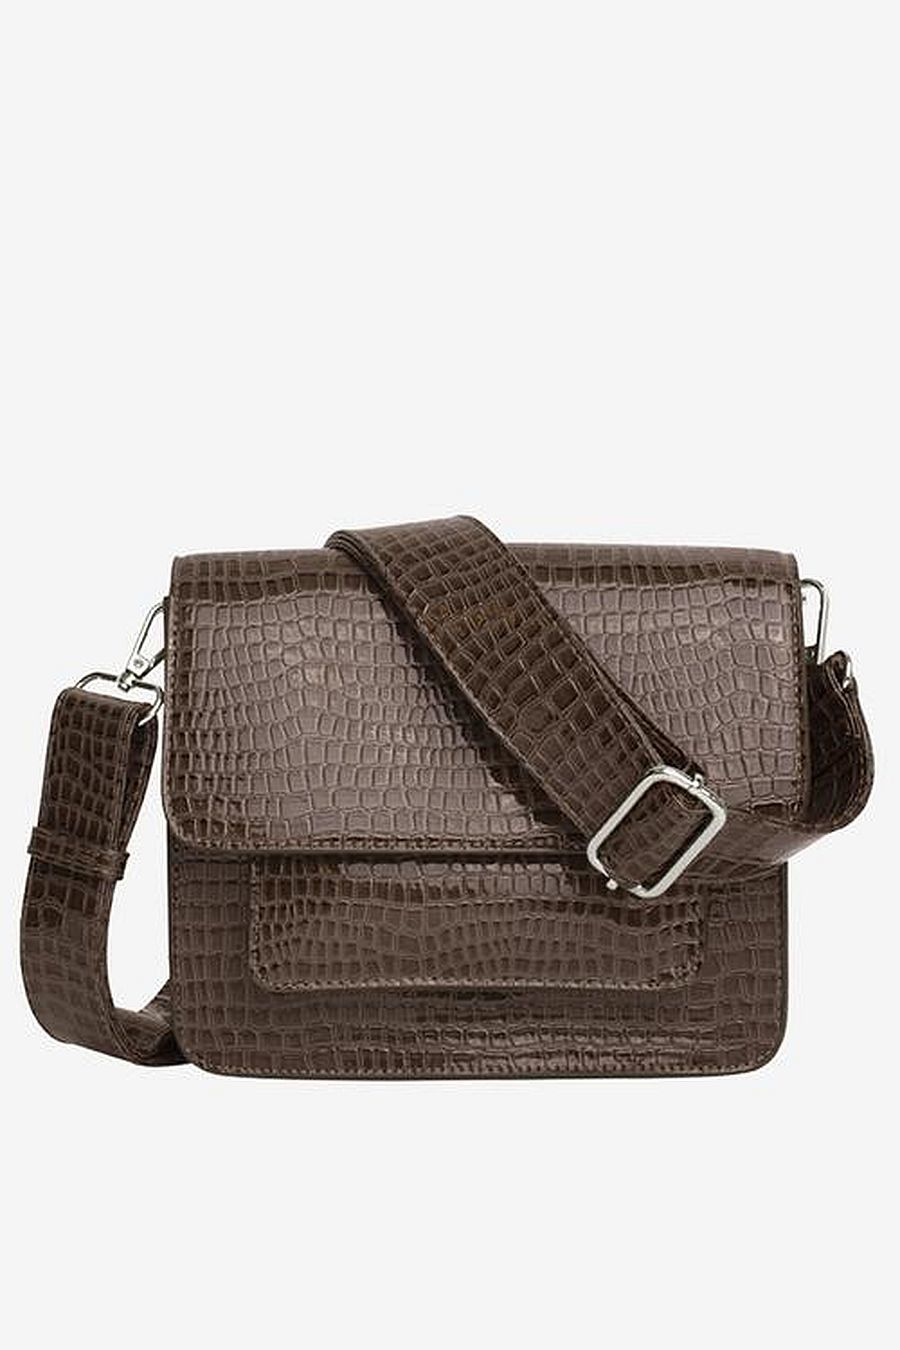 HVISK Cayman Pocket - Brown